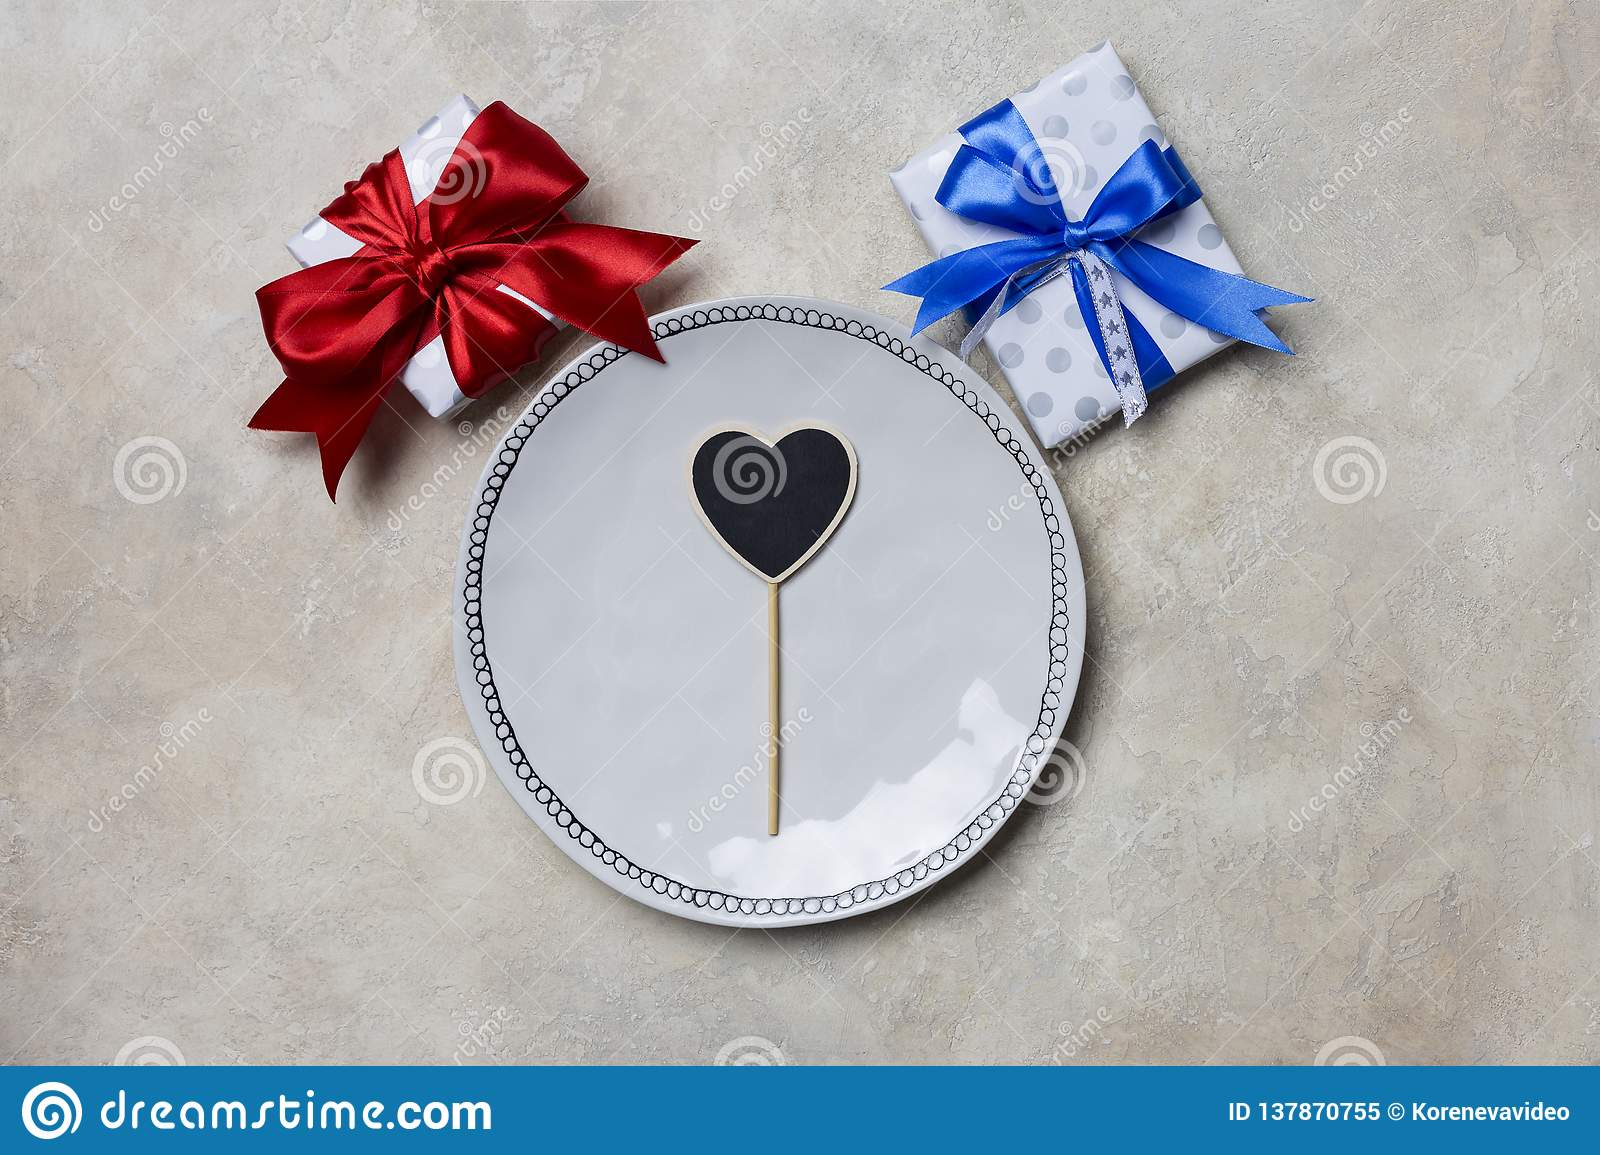 White plate with gift boxes with red and blue ribbons at white background